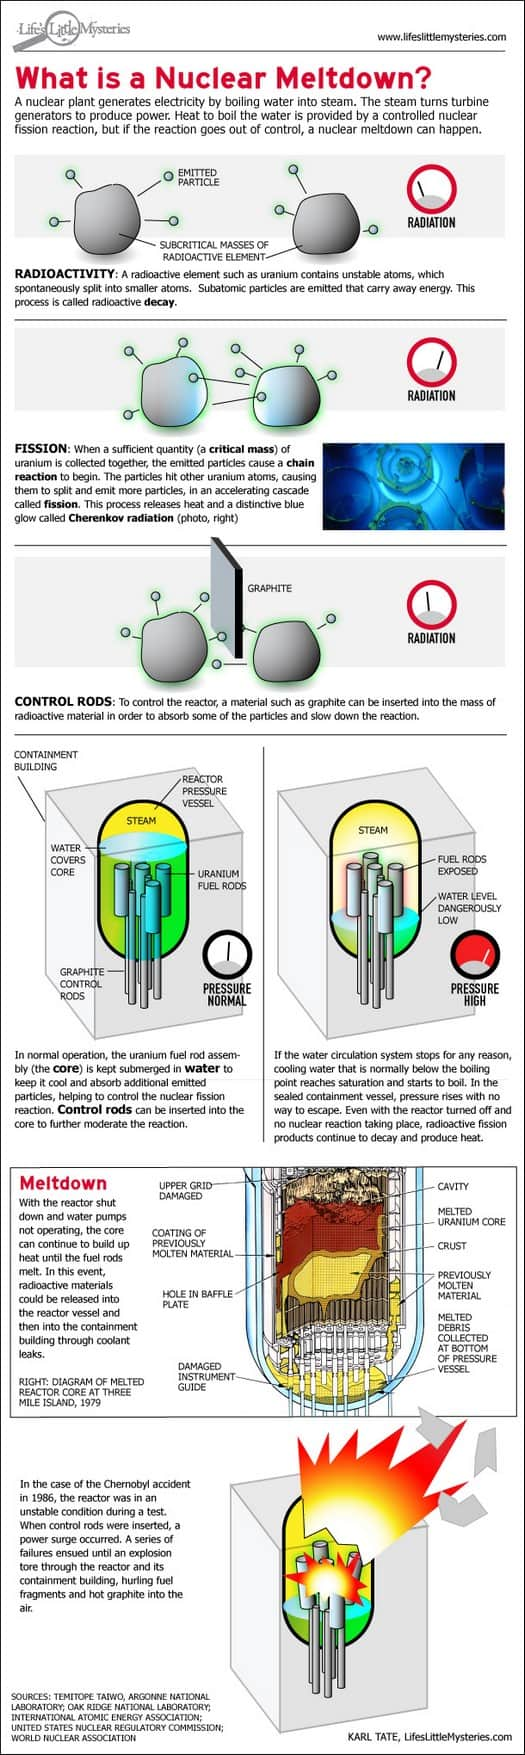 nuclear reactor meltdown infographic